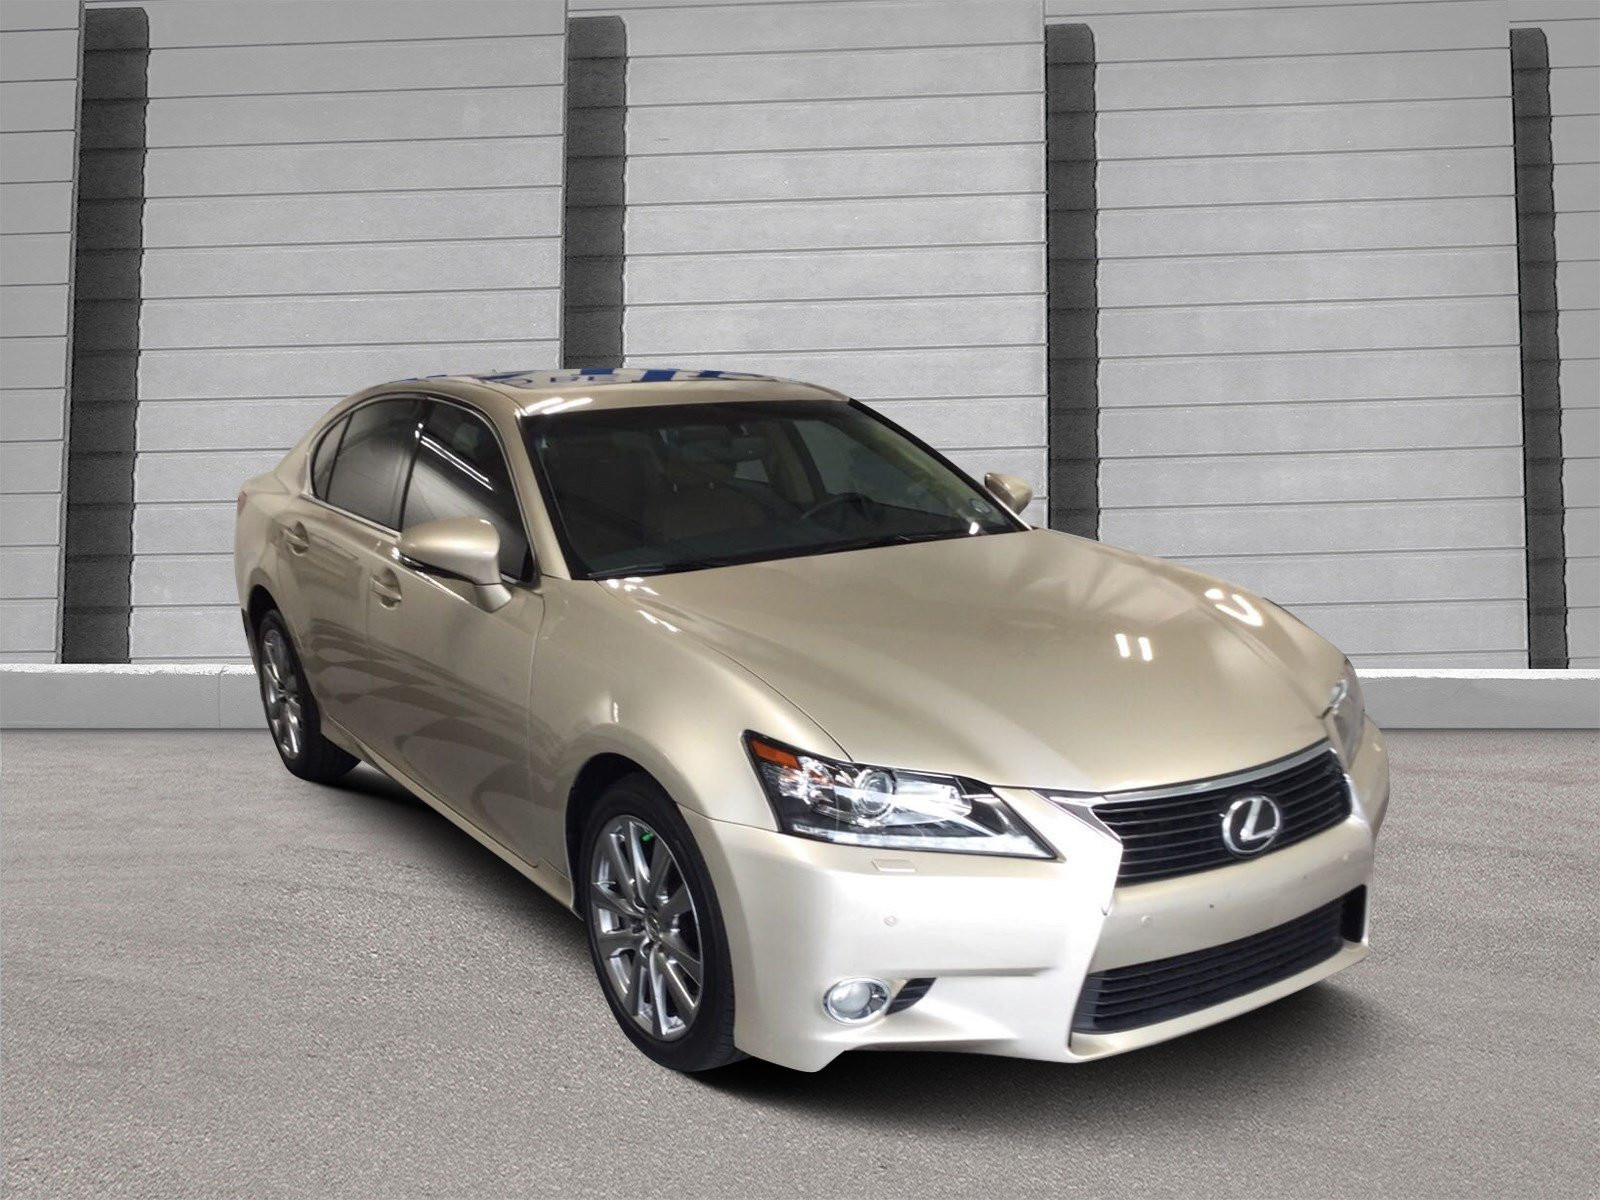 gs hardwood floors ltd of pre owned 2013 lexus gs 350 350 4dr car in union city d5004869 regarding pre owned 2013 lexus gs 350 350